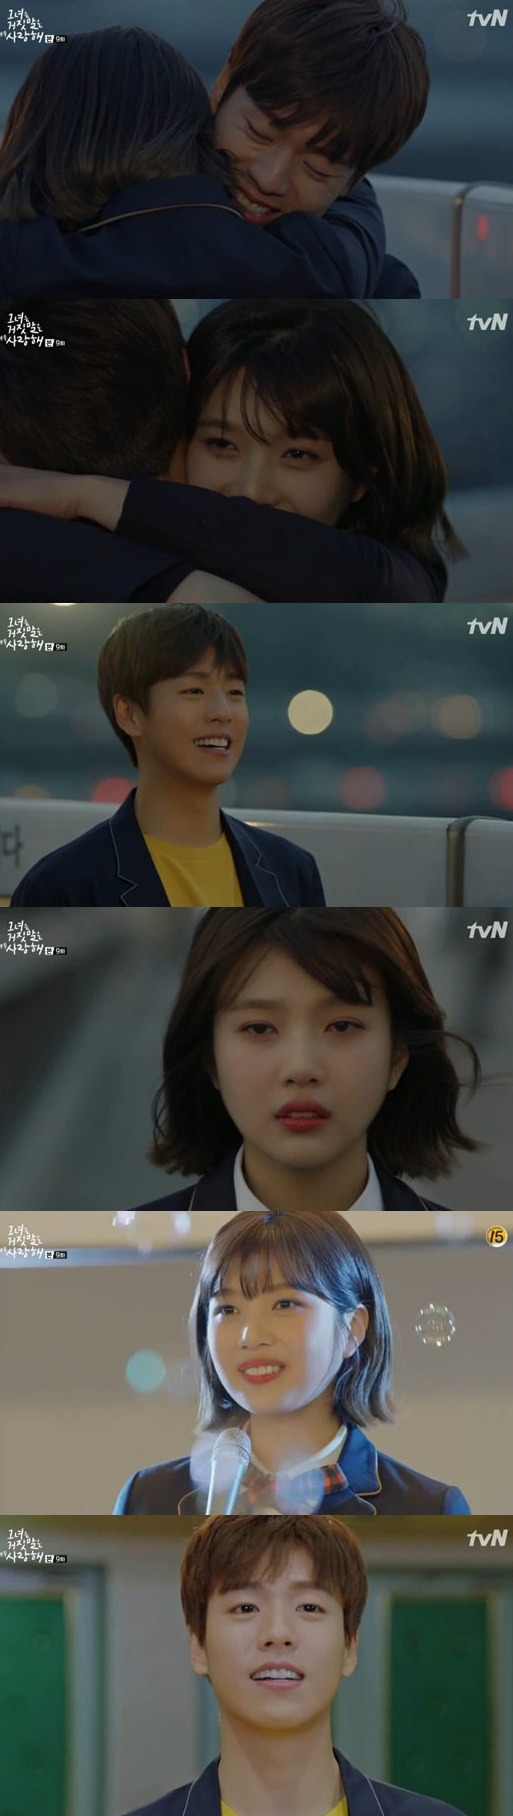 [Spoiler] Added episode 9 captures for the Korean drama 'The Liar and His Lover'